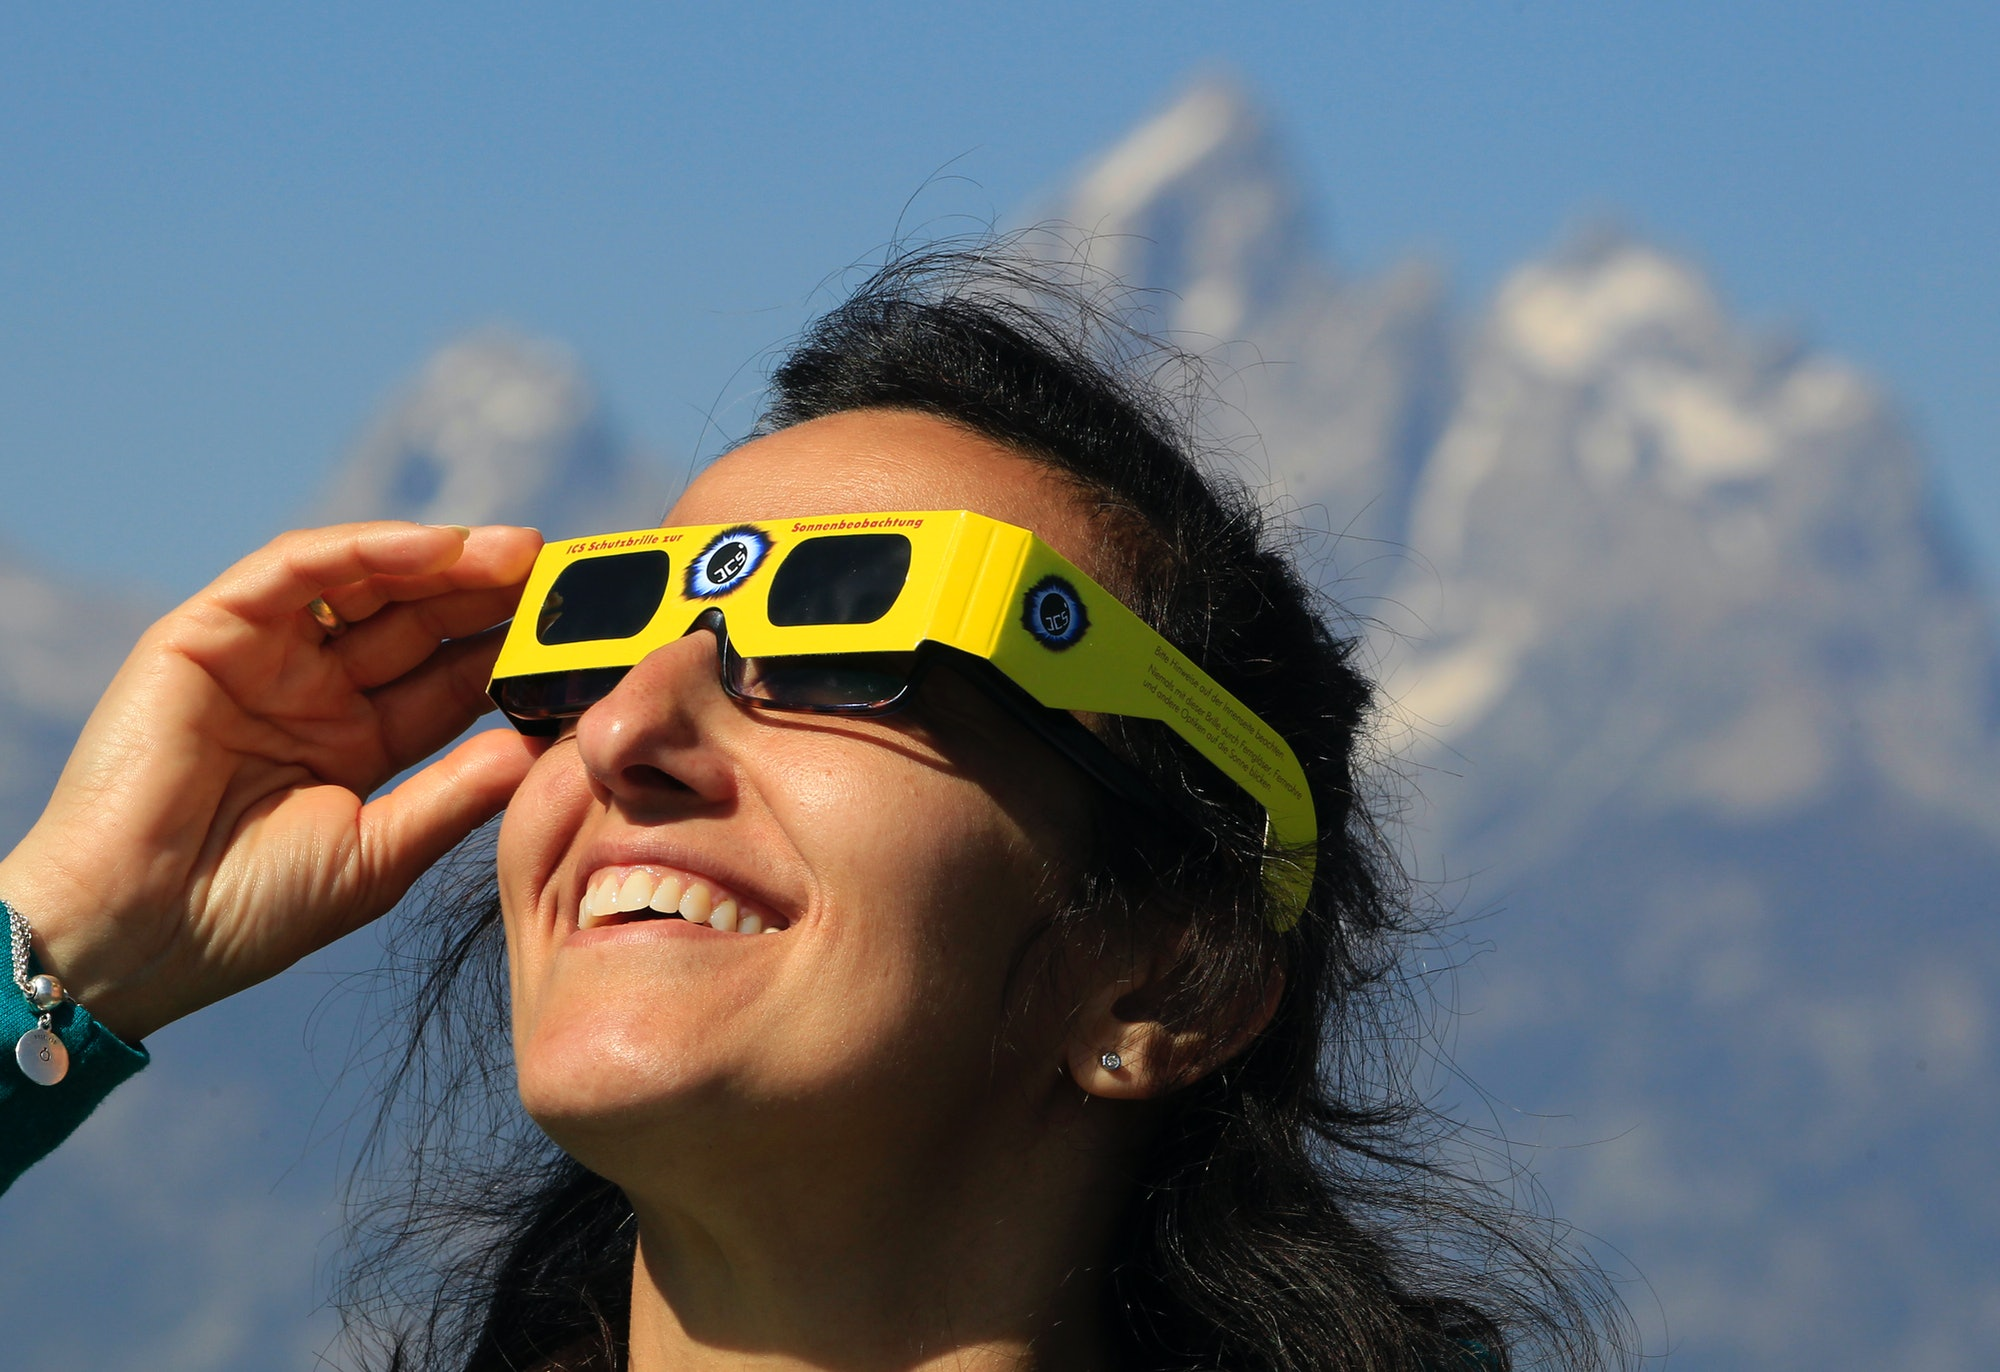 JACKSON, WY - AUGUST 21: A woman views the solar eclipse in the first phase of a total eclipse in Grand Teton National Park on August 21, 2017 outside Jackson, Wyoming. Thousands of people have flocked to the Jackson and Teton National Park area for the 2017 solar eclipse which will be one of the areas that will experience a 100% eclipse on Monday August 21, 2017. (Photo by George Frey/Getty Images)